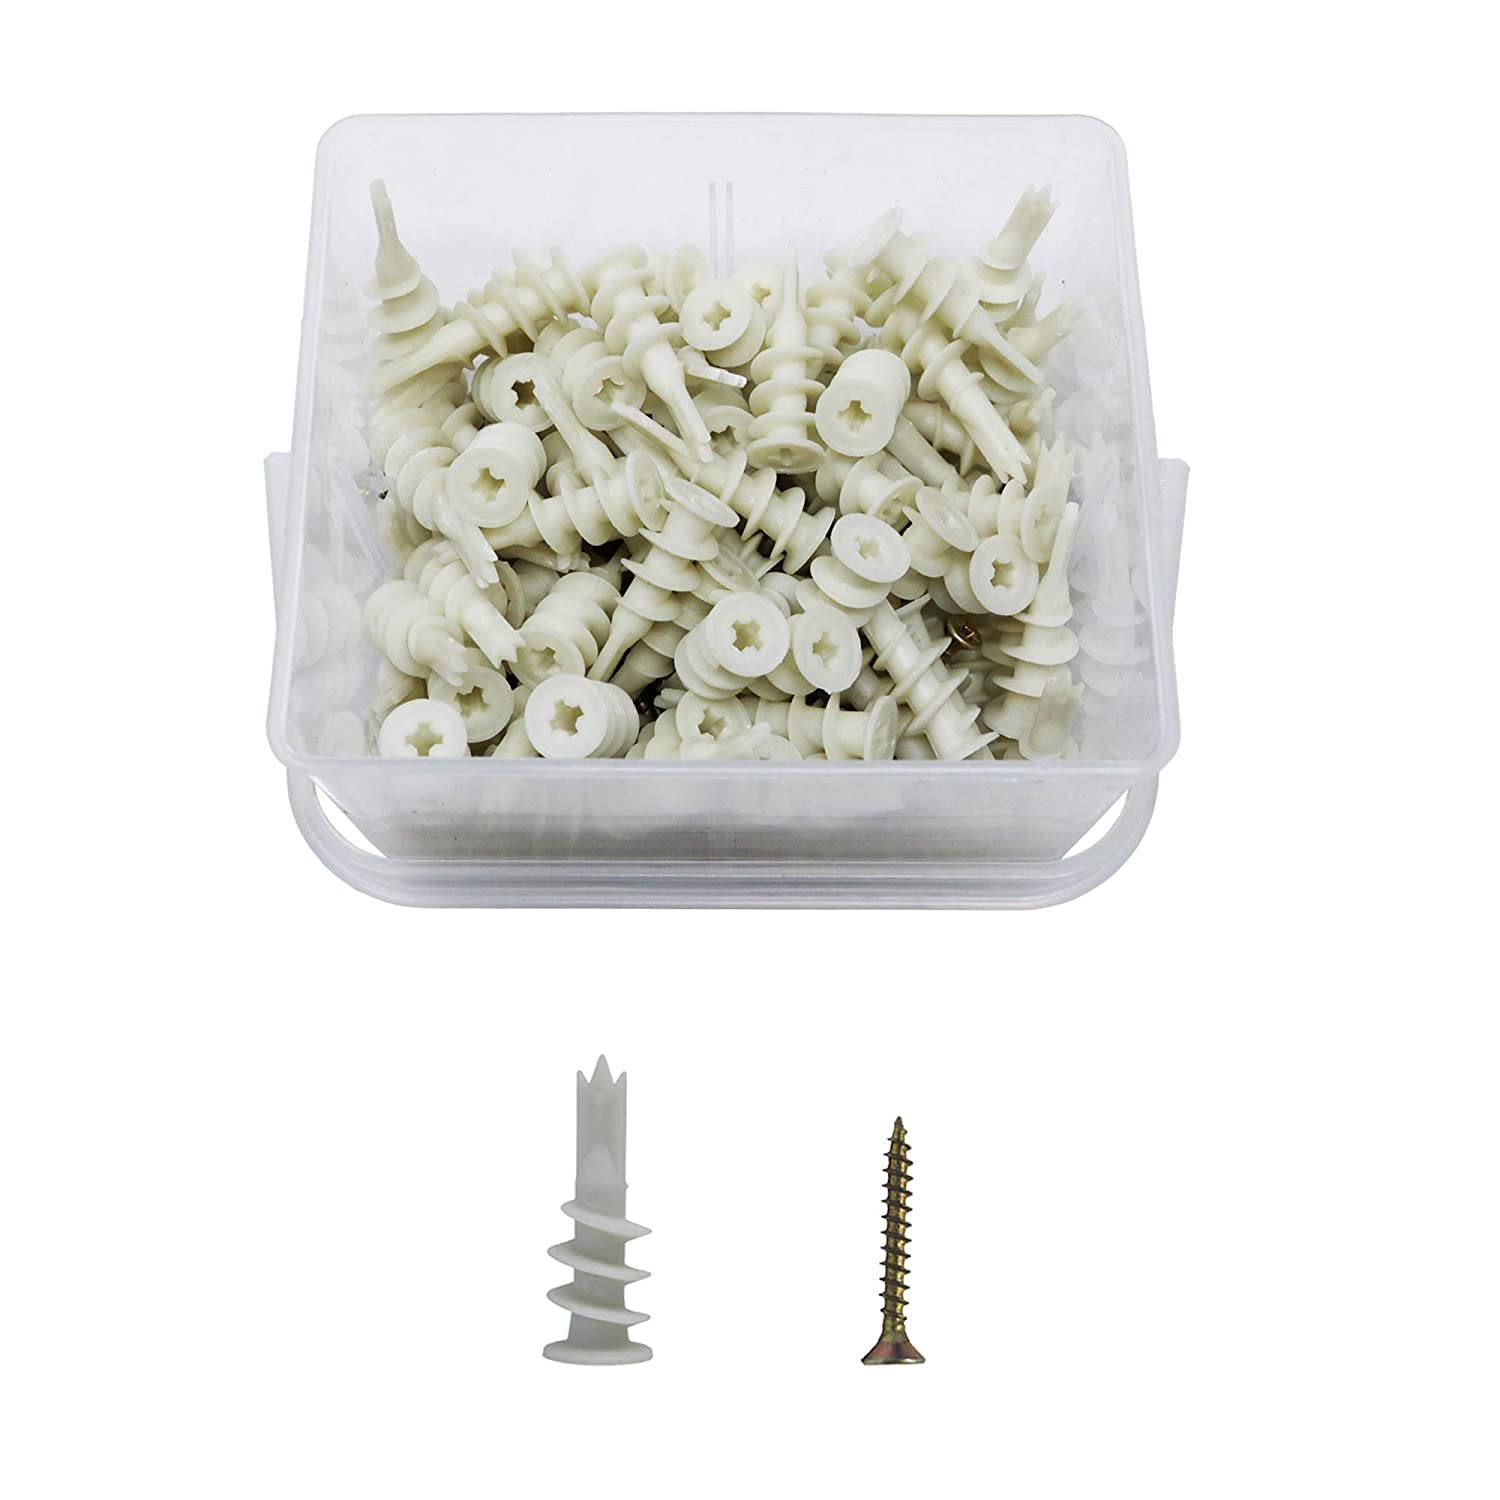 ORGRIMMAR Drywall Anchor 14x41mm Self Drilling Plastic Hollow Wall Anchor Three Sharp Design Nylon Plug and Chipboard Screws 4.0x30mm Assortment Kit,200 Pcs